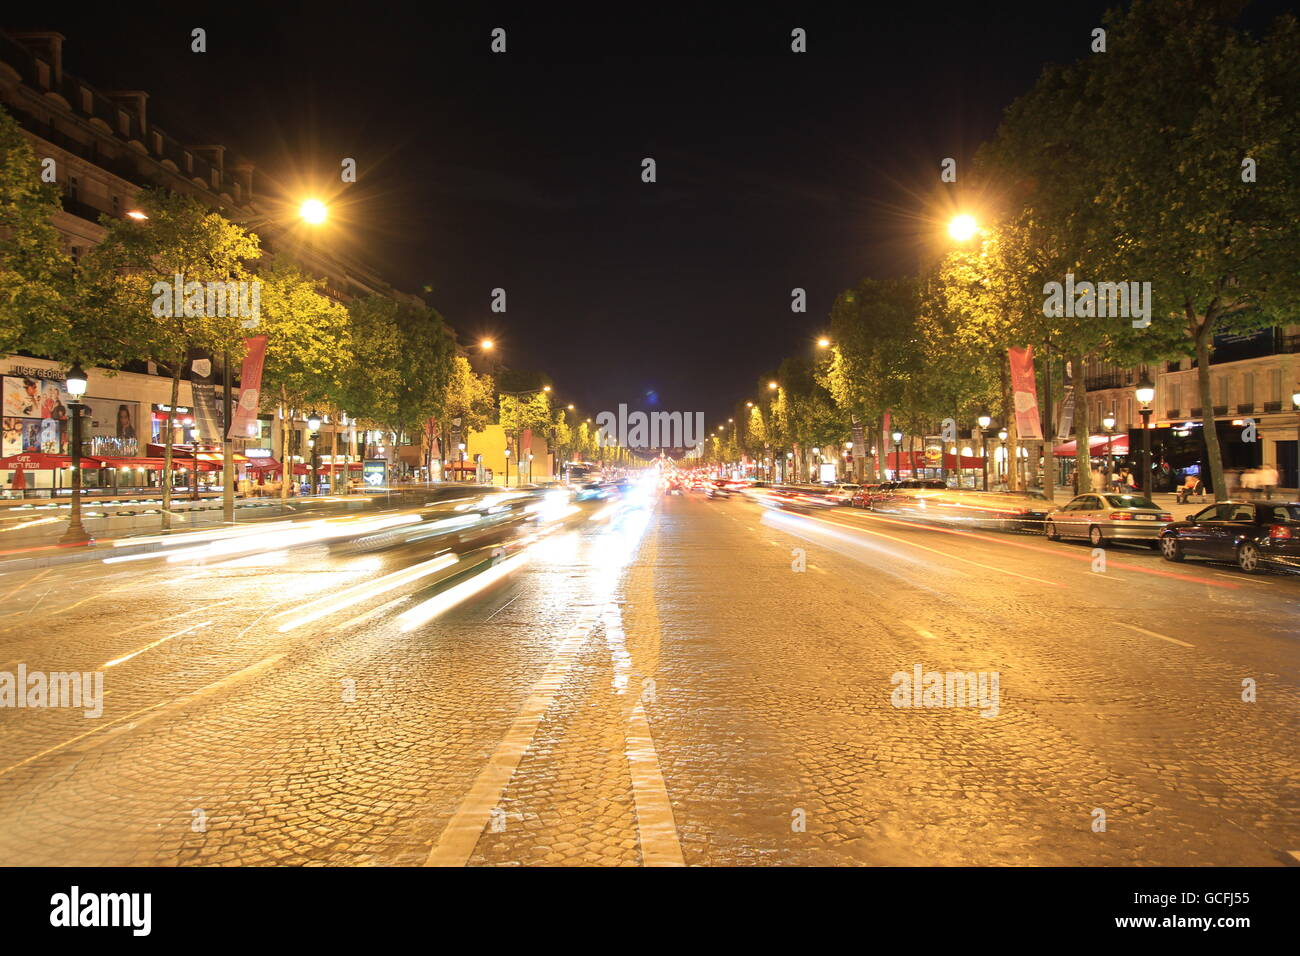 The Avenue des Champs-Elysées is probably the most famous avenue in the world. - Stock Image